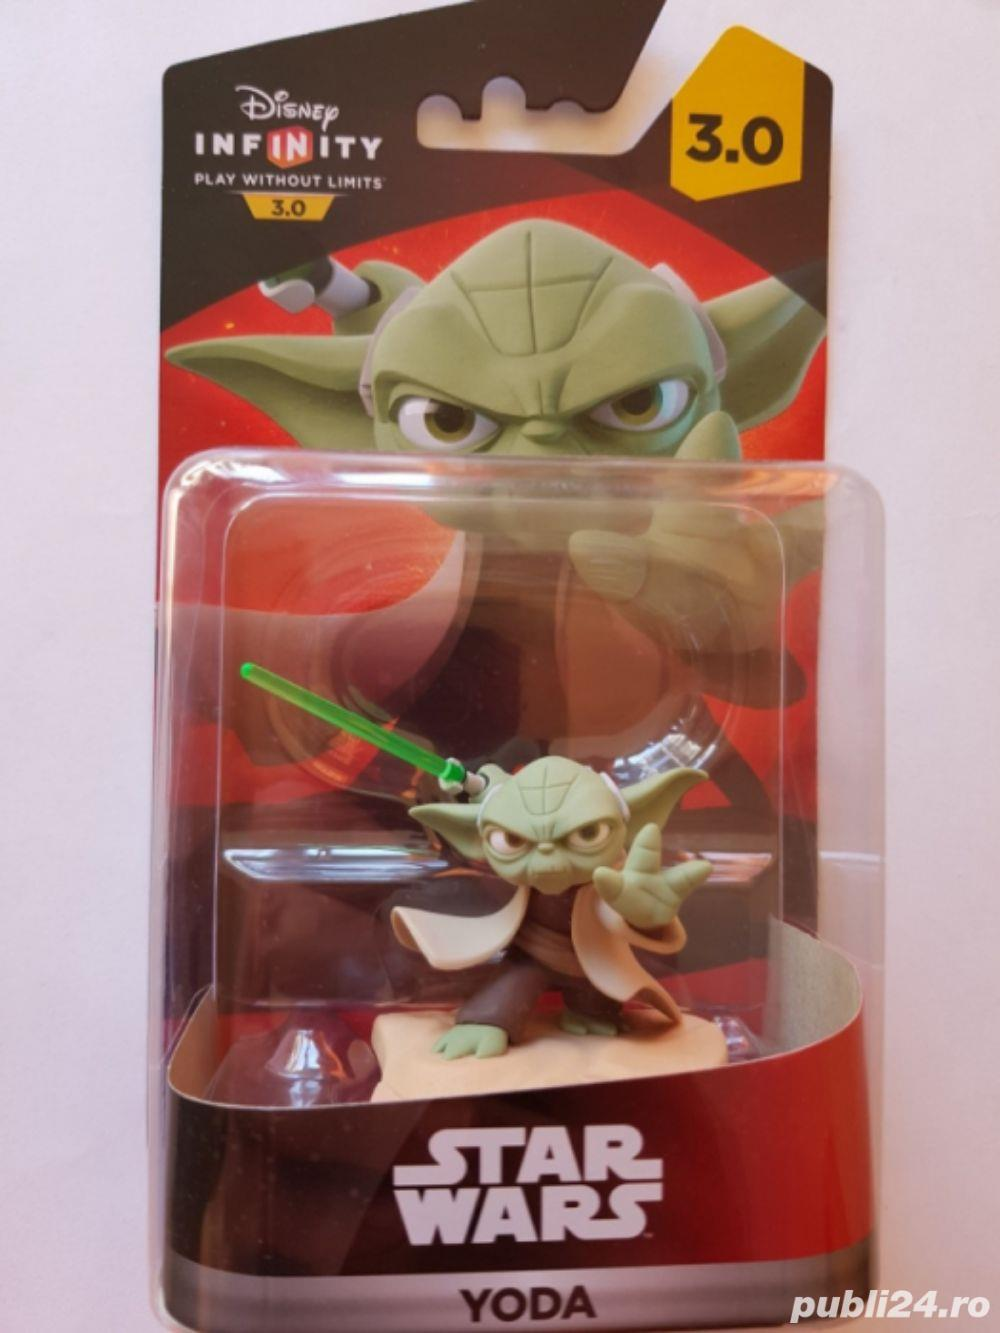 Figurina Disney Infinity 3.0 / STAR WARS / Yoda